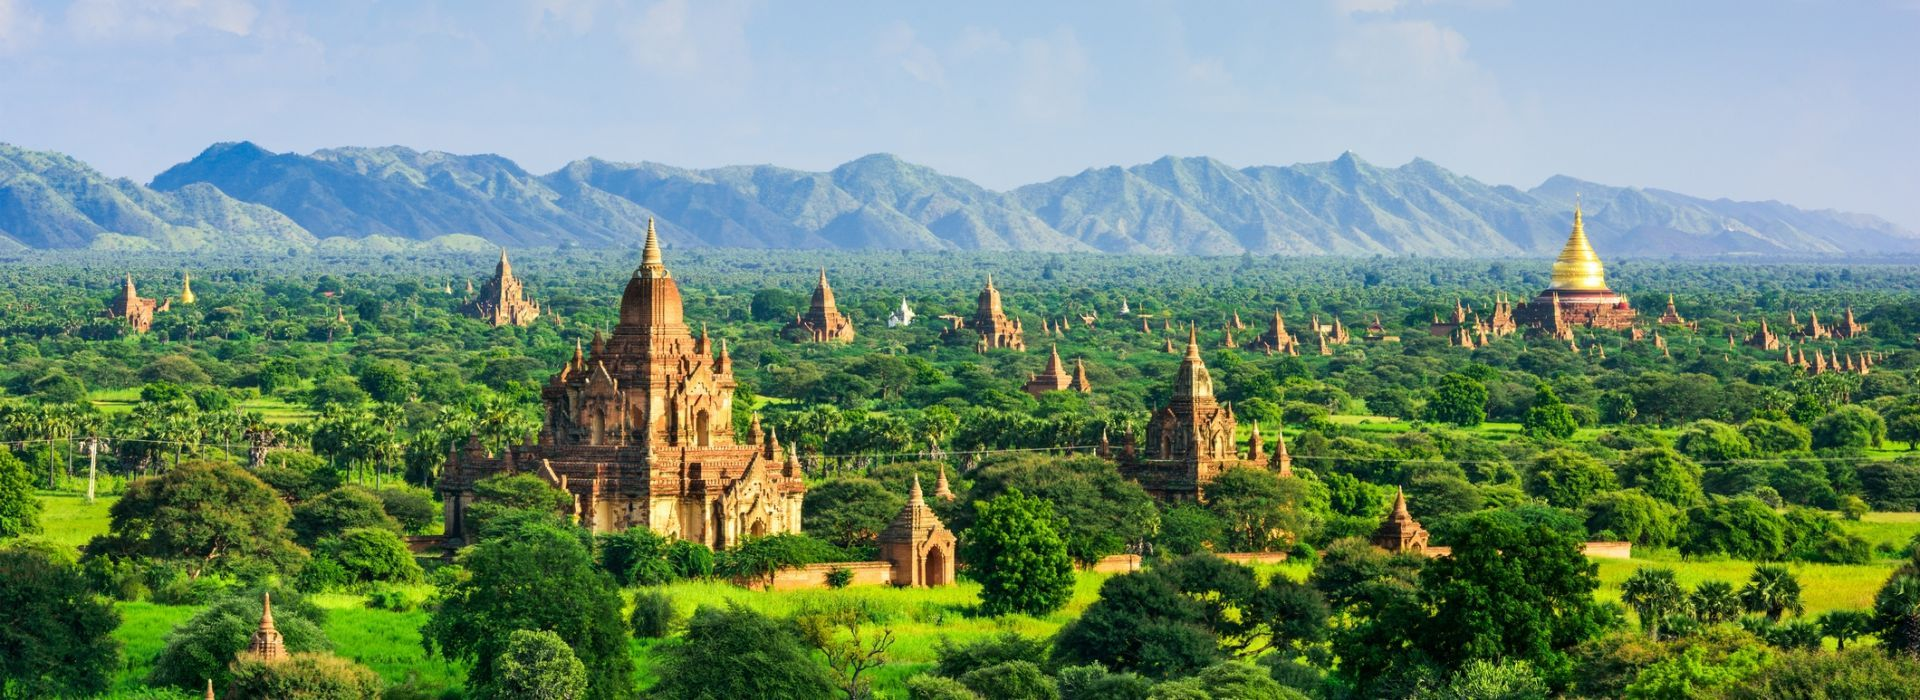 Wildlife, landscapes and nature Tours in Yangon